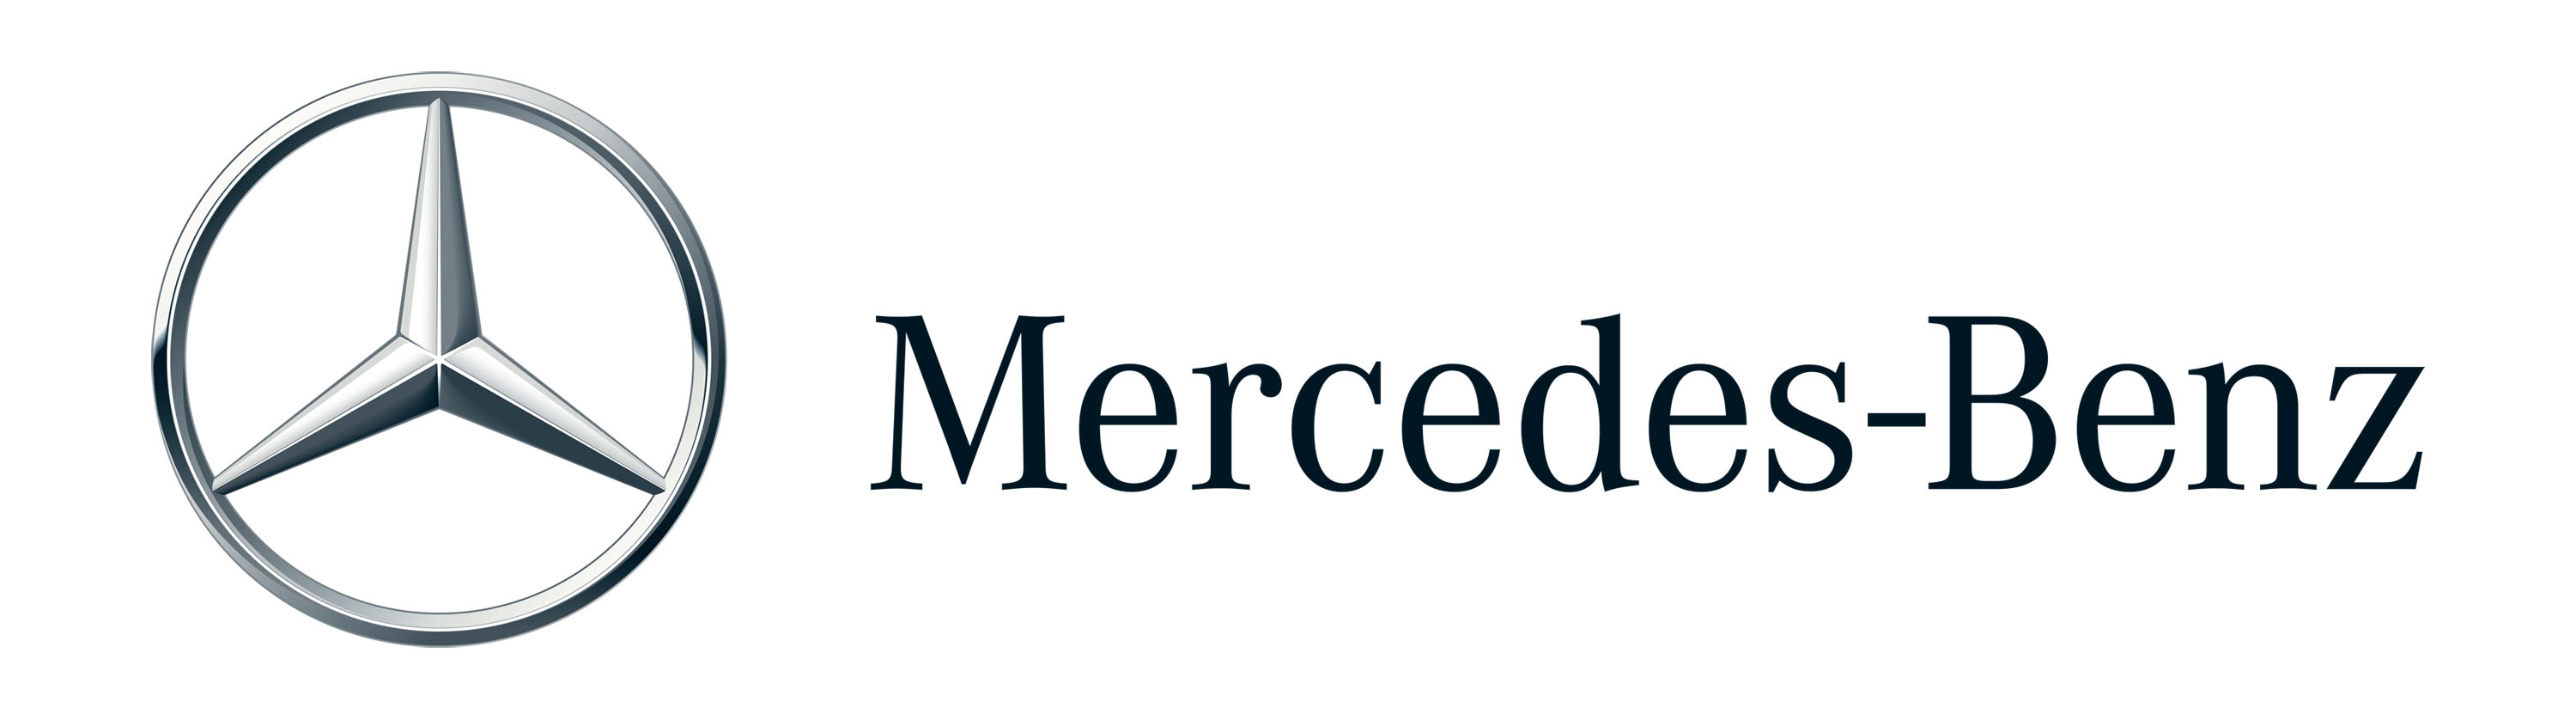 Germany Mercedes benz logo company